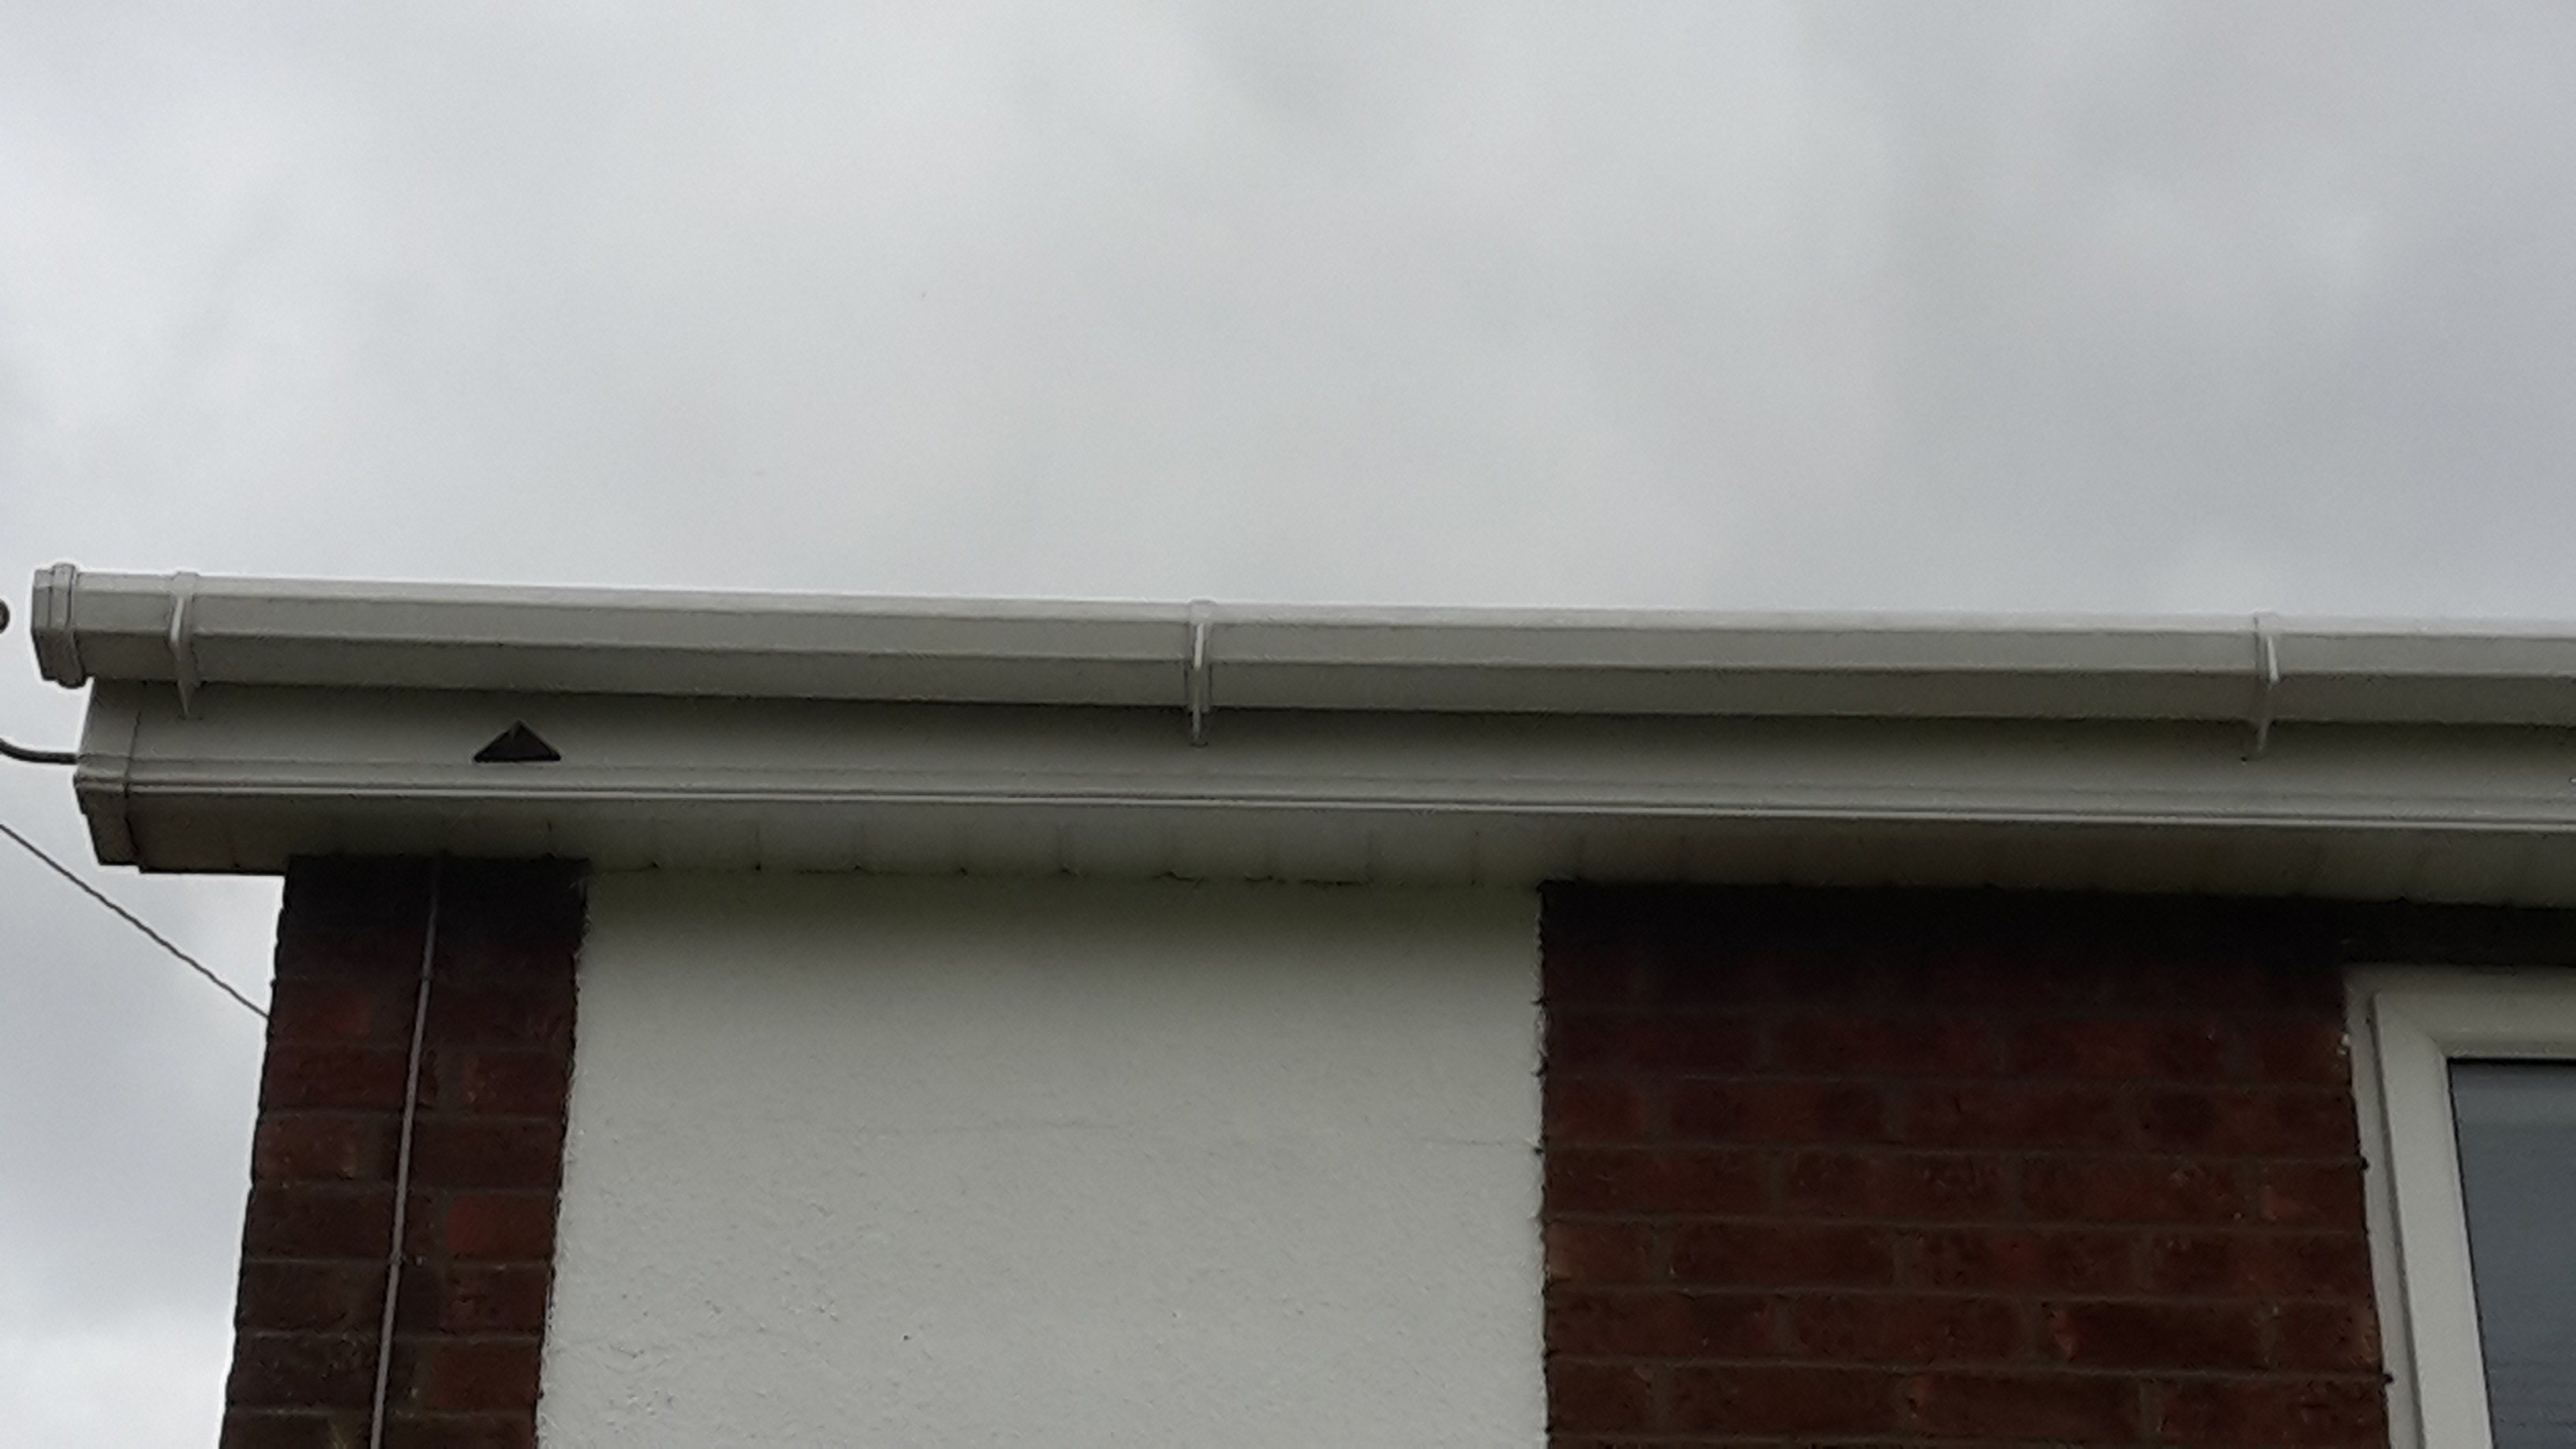 Fascia, Soffit and Gutter Cleaning Grimsby, Fascia, Soffit and Gutter Cleaning Cleethorpes, Fascia, Soffit and Gutter Cleaning Louth, Fascia, Soffit and Gutter Cleaning Caistor